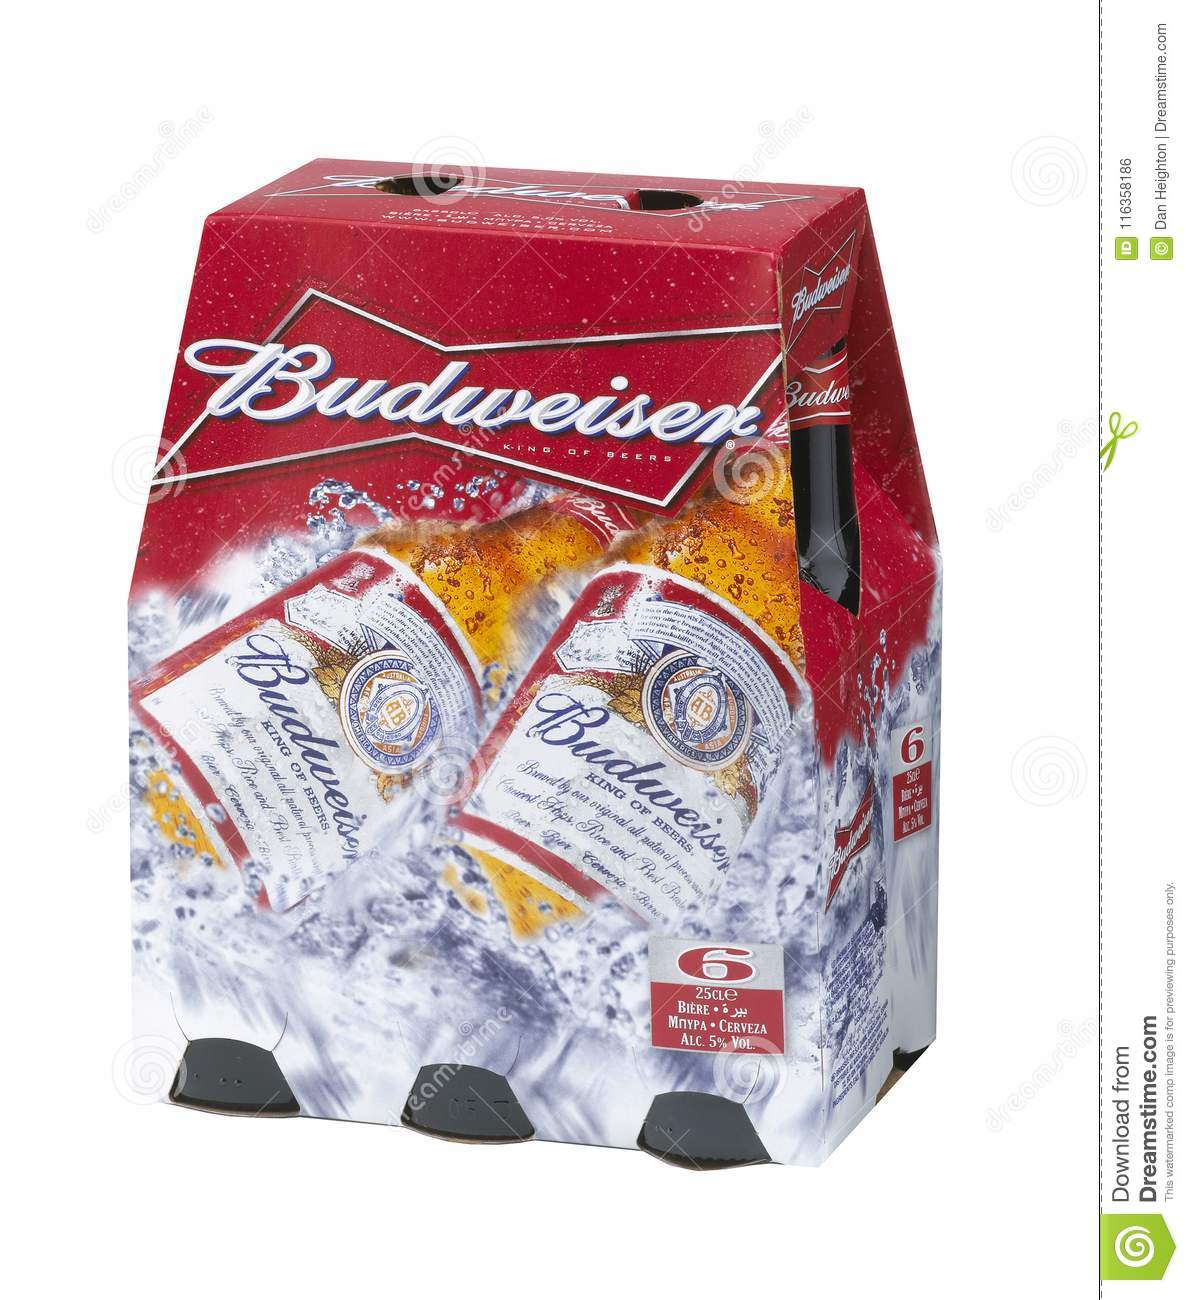 BUDWEISER BEER BOTTLE SIX PACK Editorial Photo - Image of